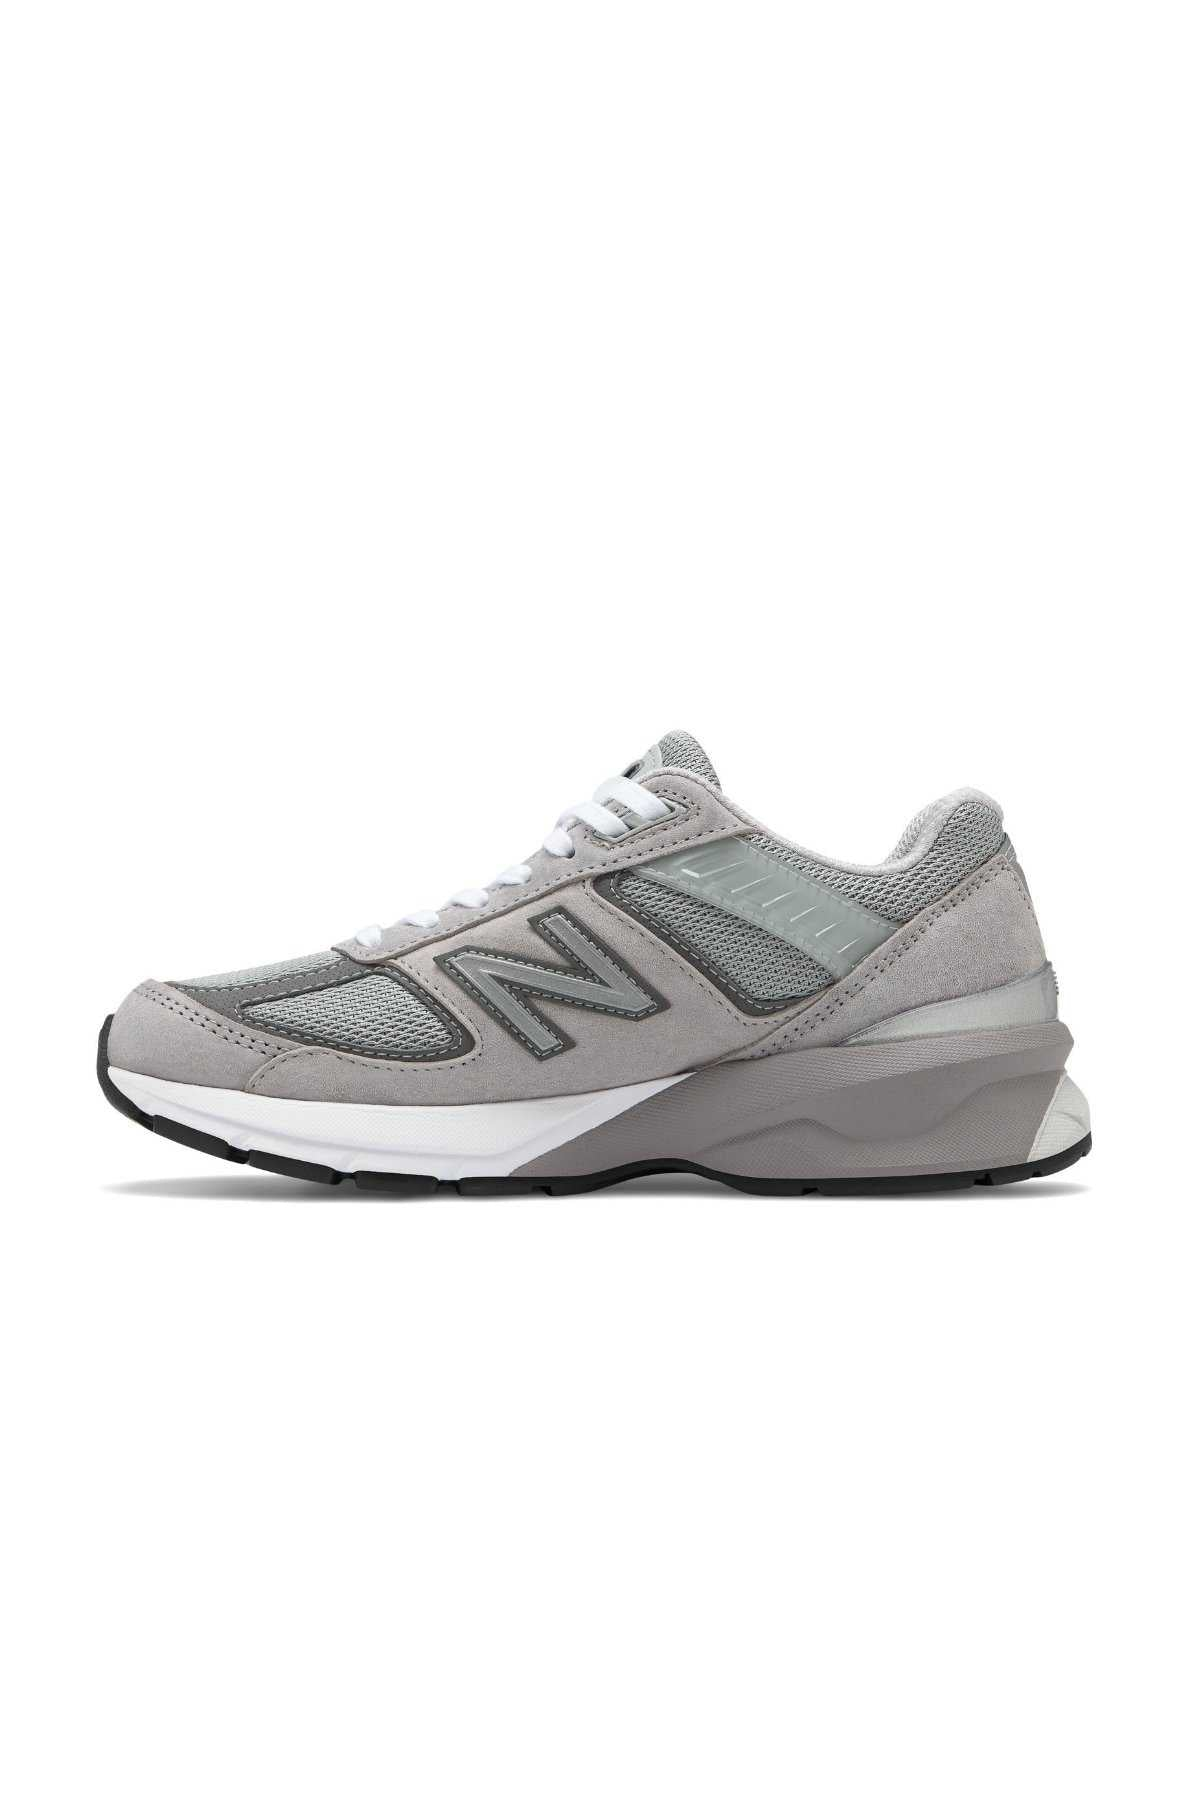 "Naisten New Balance 990v5 Made in US - GL5 grey | INCH"" verkkokauppa"